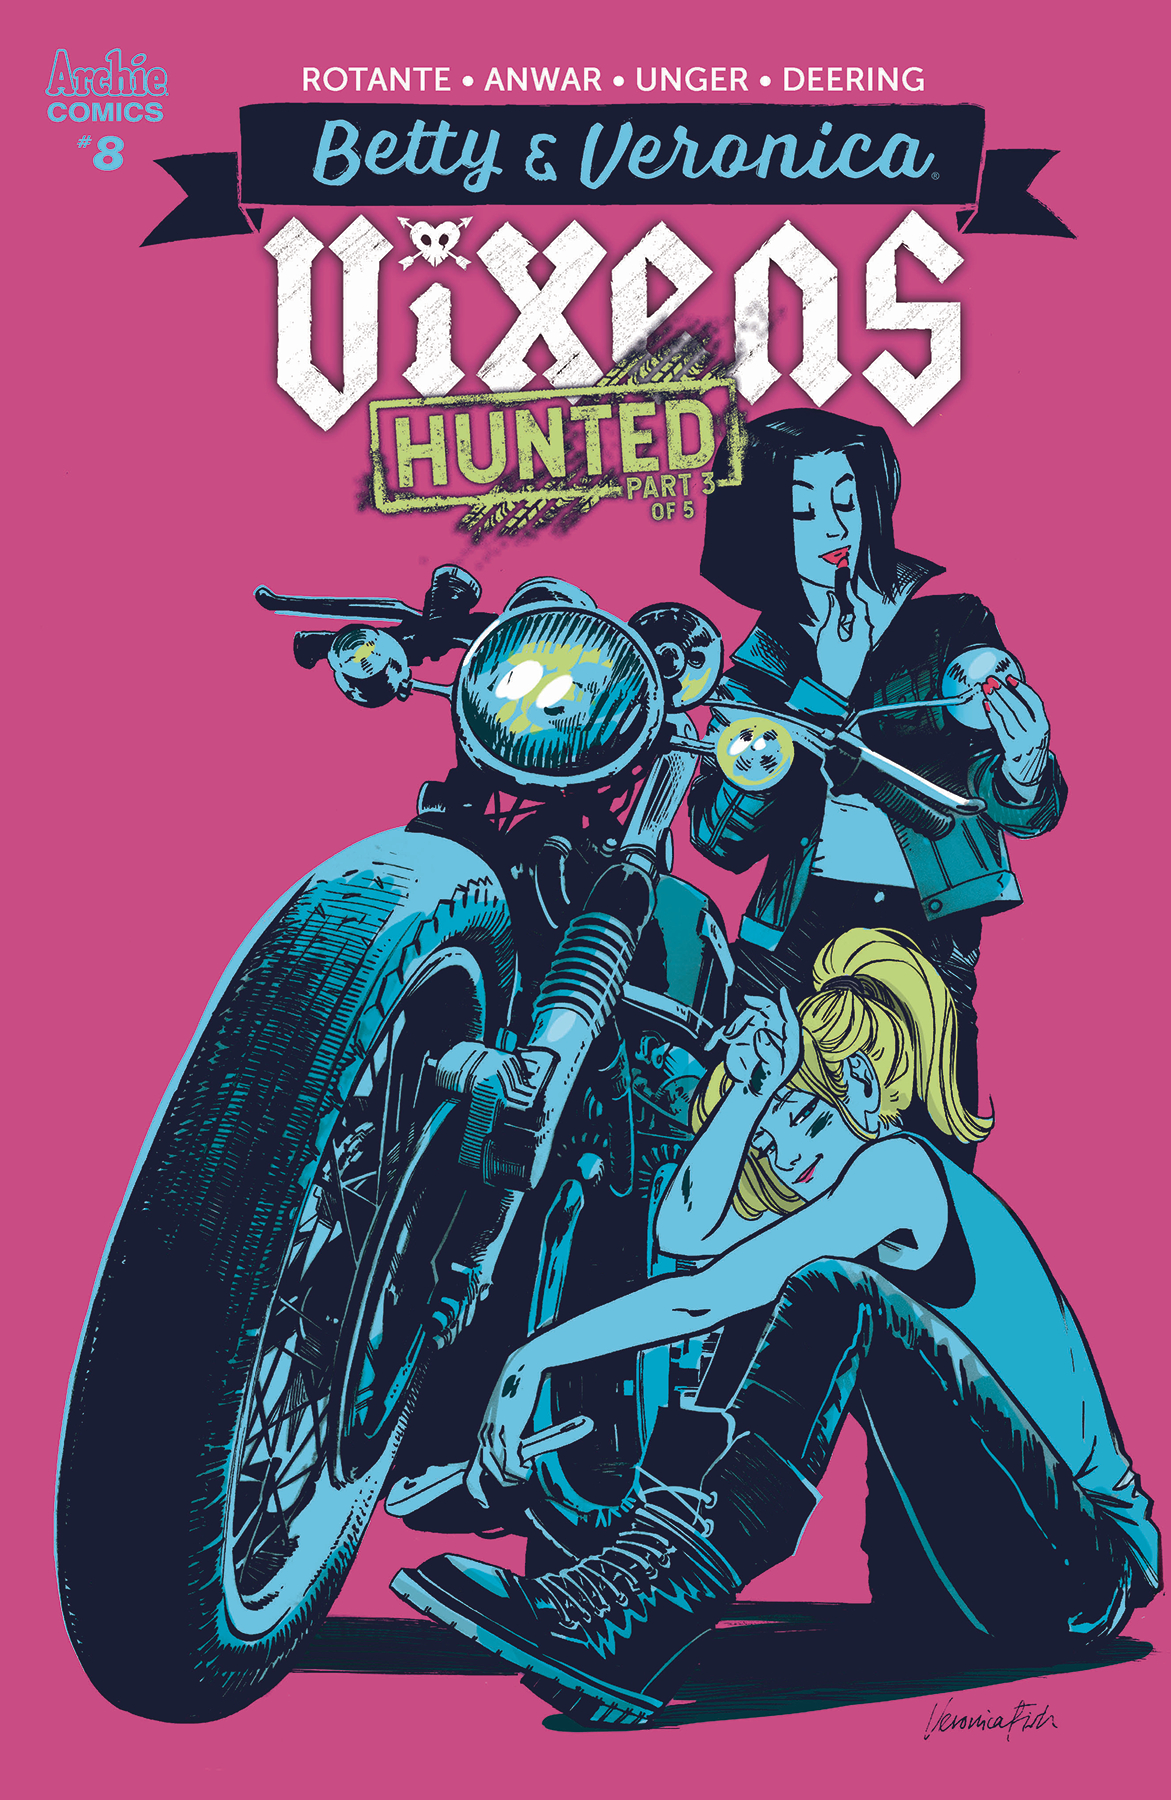 BETTY AND VERONICA VIXENS #8 (OF 10) CVR B FISH